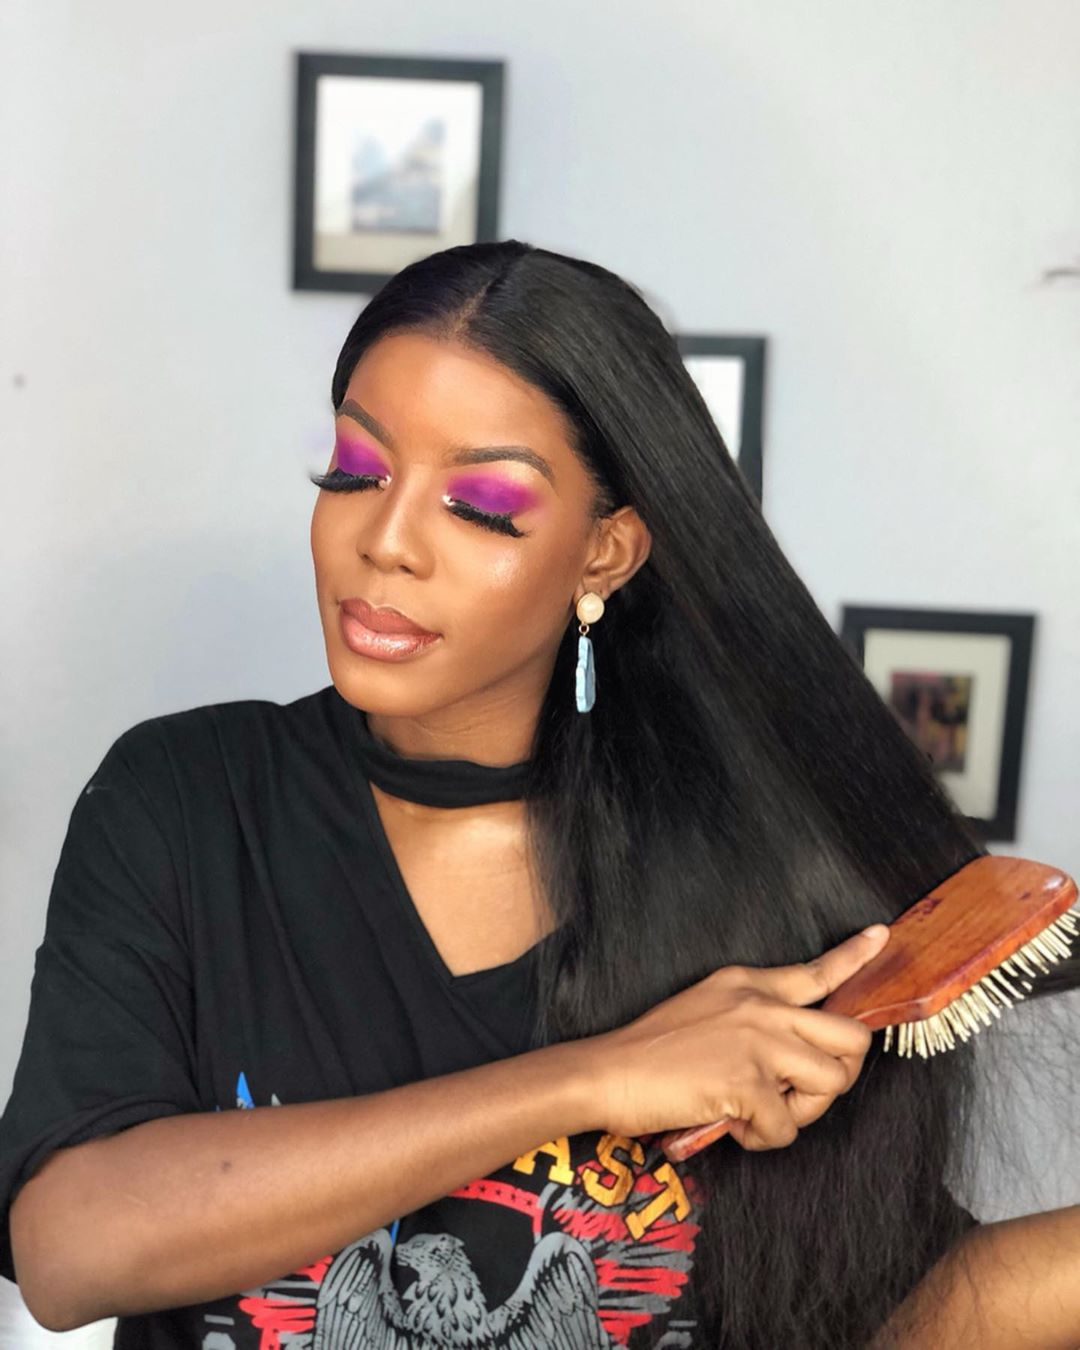 WATCH: Abuja Youtuber Vivian Okezie Assessments Estée Lauder's Double Put on Basis, and the Outcomes Have been Superb